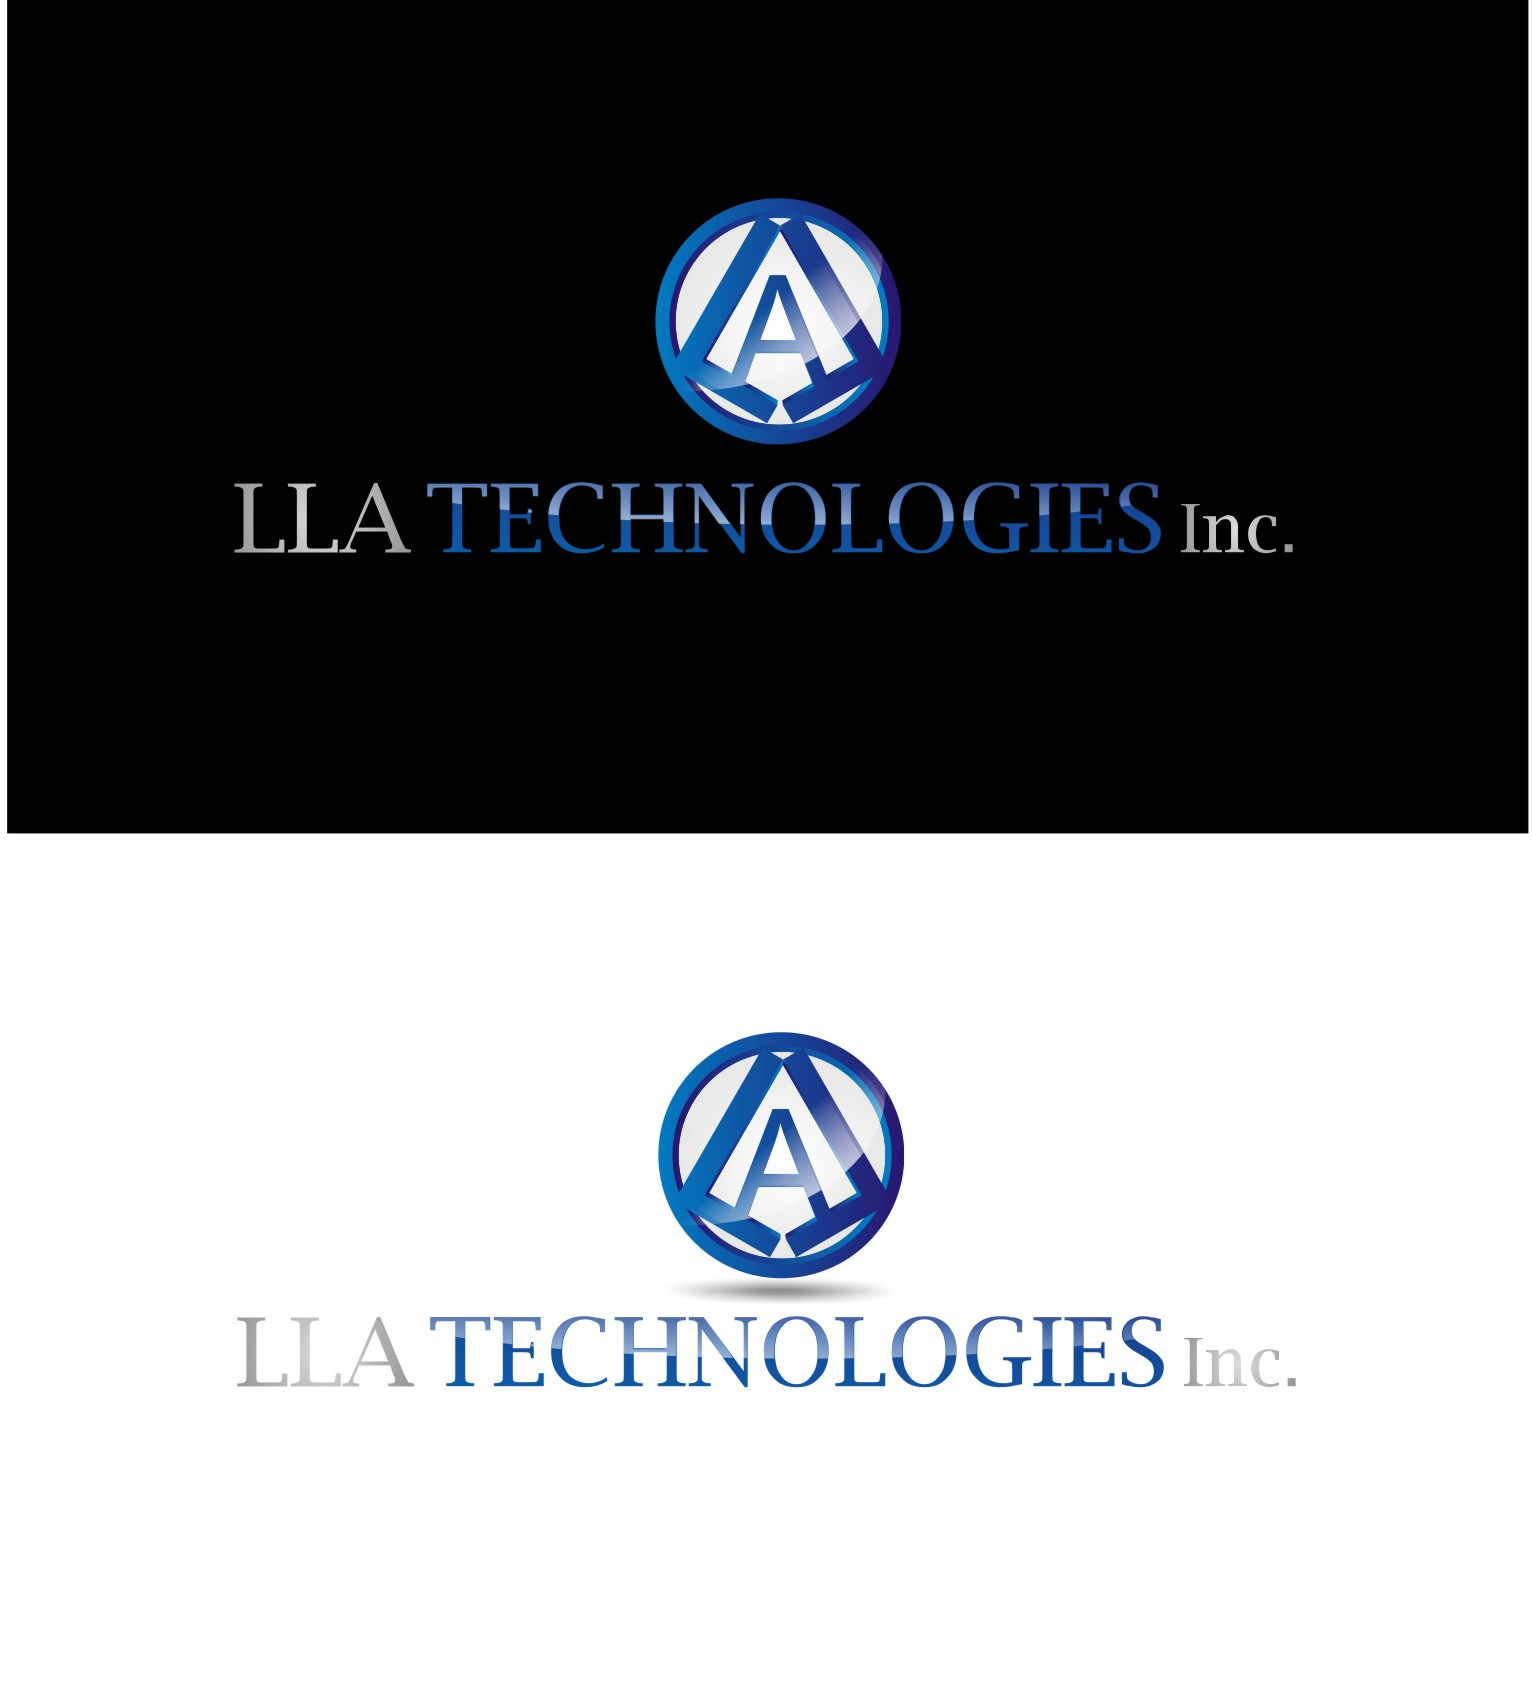 Logo Design by Yuda Hermawan - Entry No. 162 in the Logo Design Contest Inspiring Logo Design for LLA Technologies Inc..